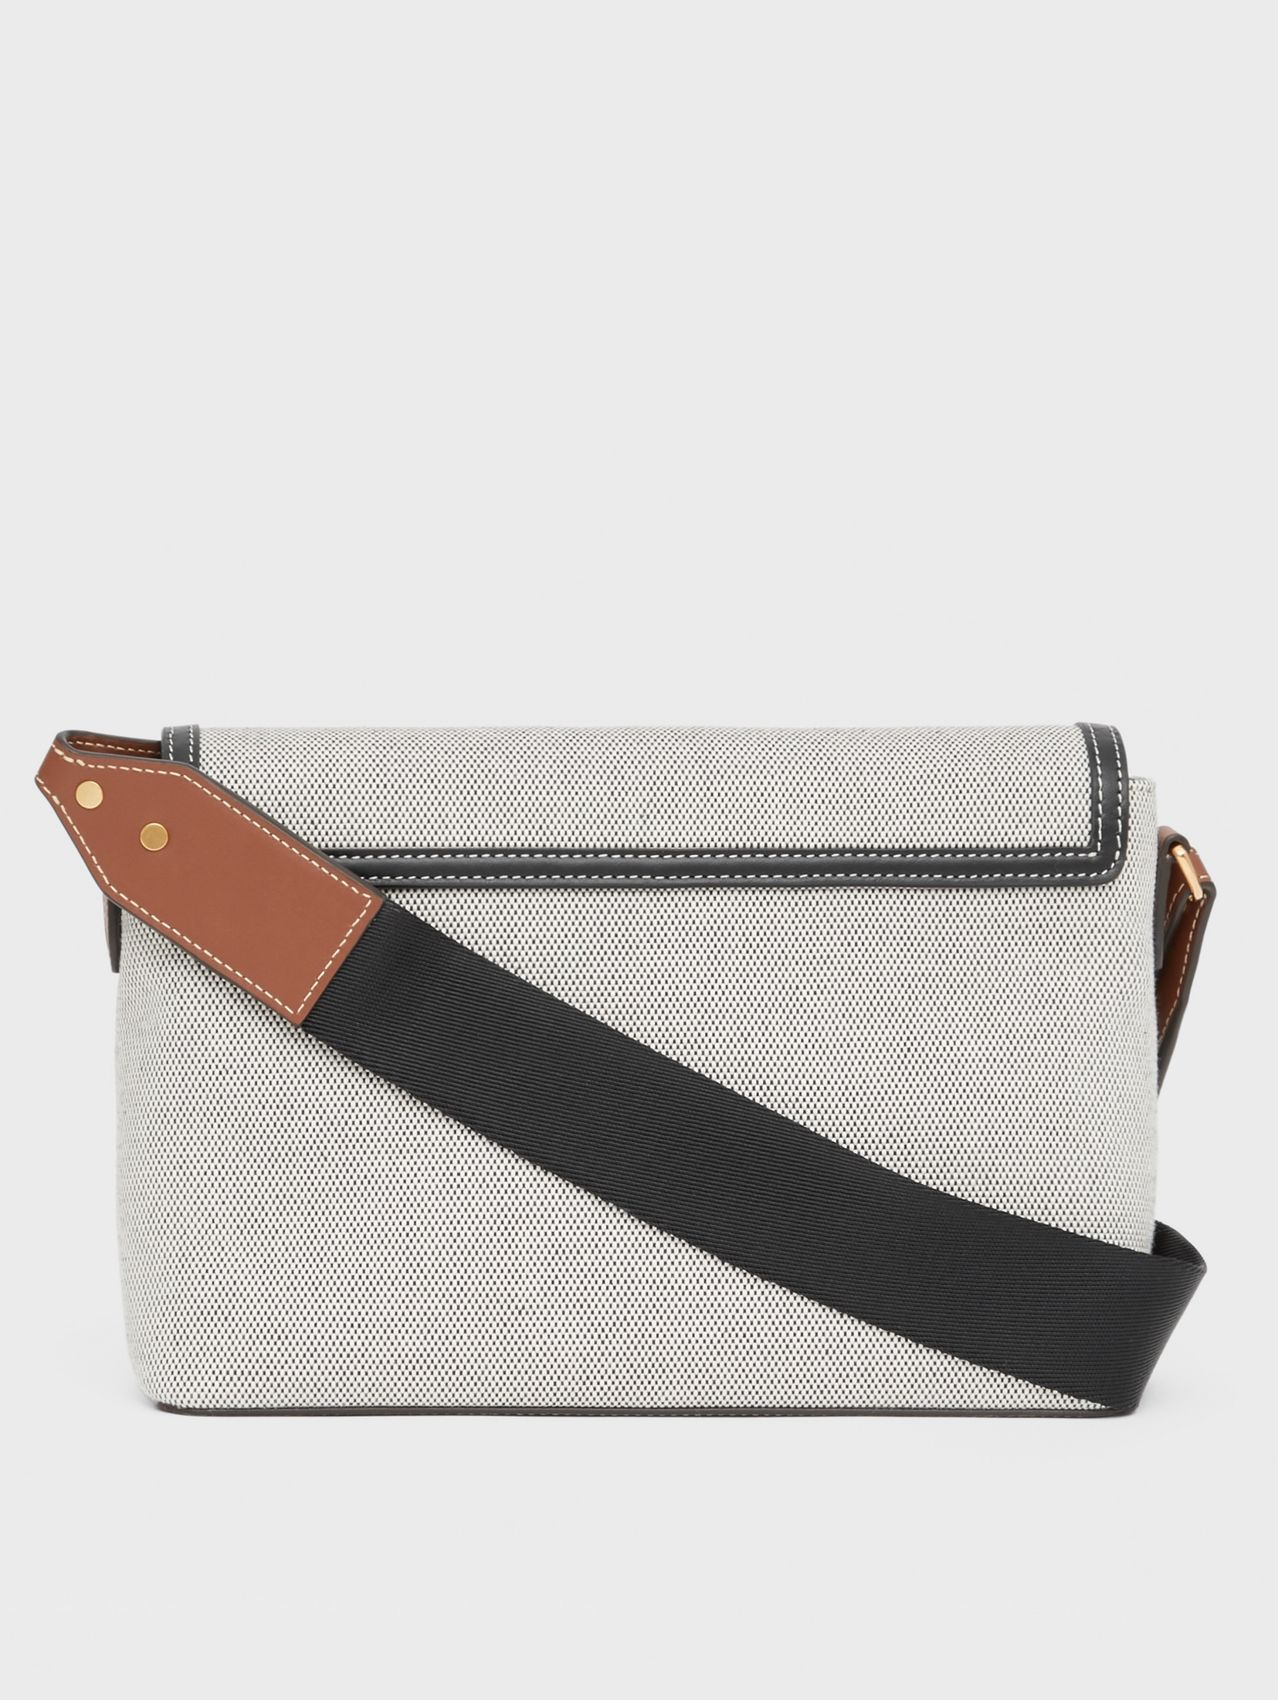 Horseferry Print Canvas Note Crossbody Bag in Black/black/tan